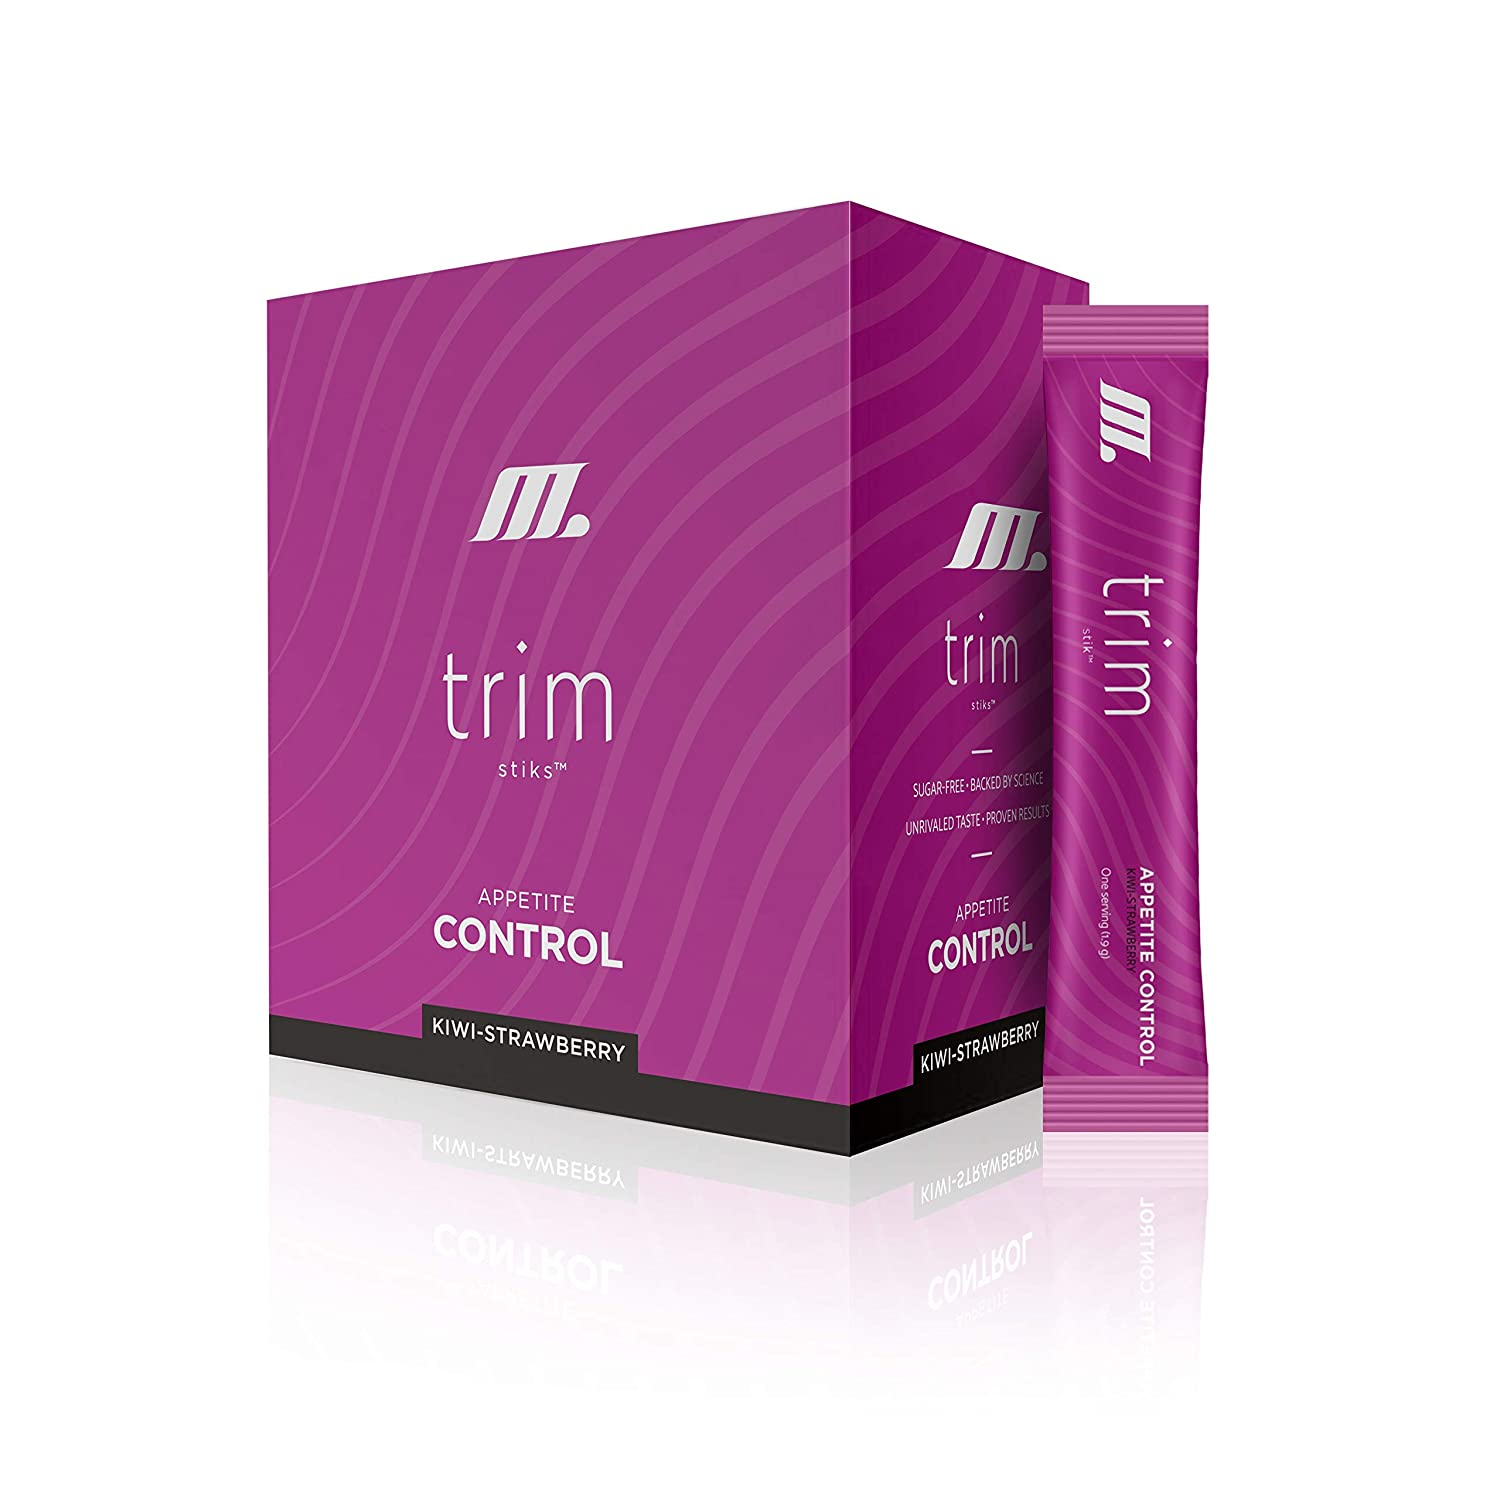 TRIM Stik, Appetite Control, Delicious Kiwi Strawberry beverage, low-calorie, 30 ct. servings was Slim.Stik